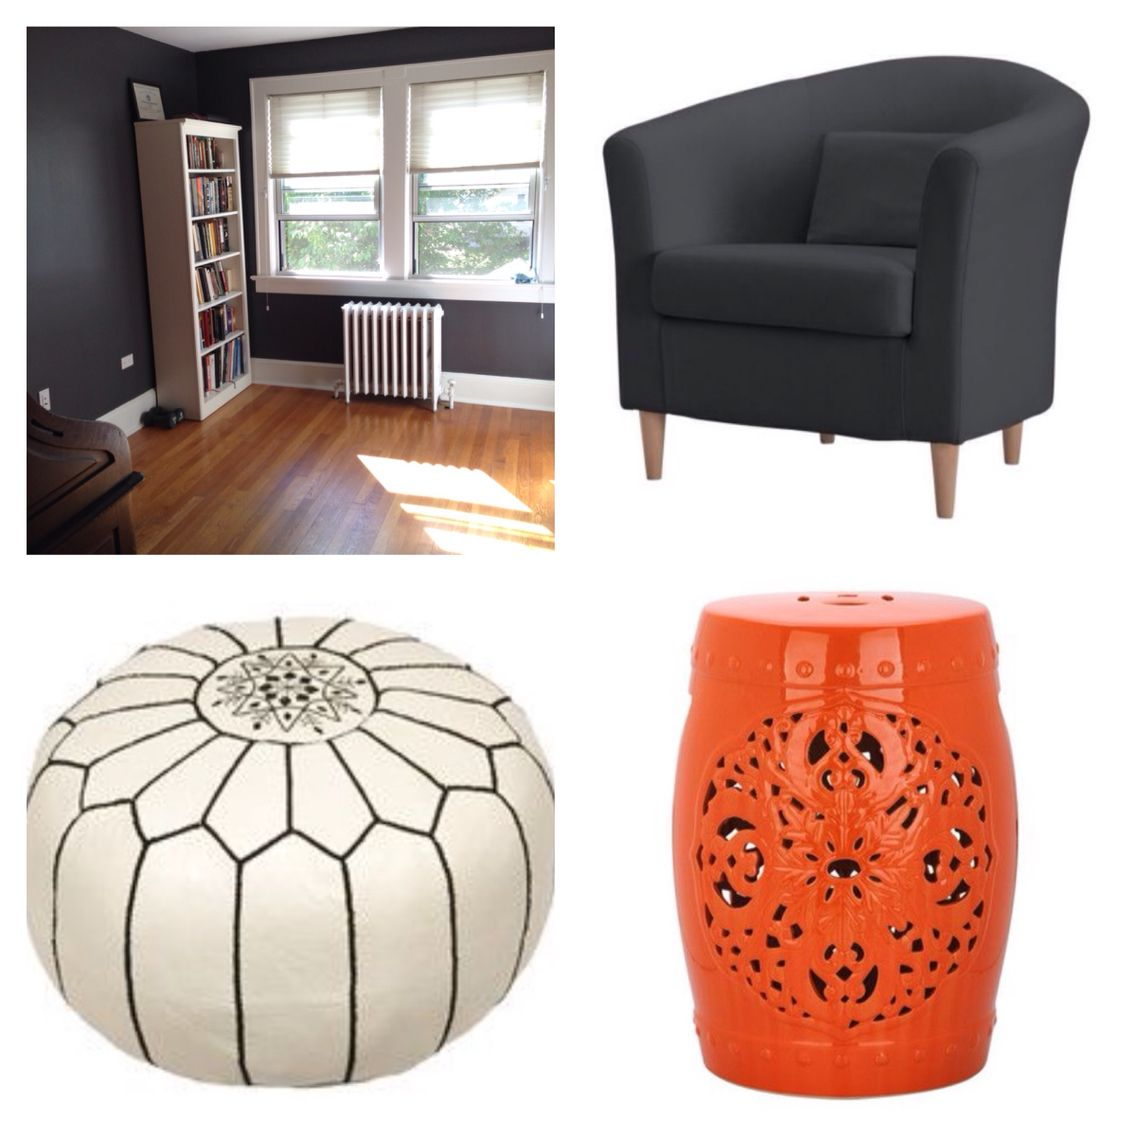 Sitting room painted and ready to be filled. These are the items I like. Chair, poof and garden stool to go next to the book case, large gold frame Mirror to go behind it. Opposite wall to be filled with framed art.